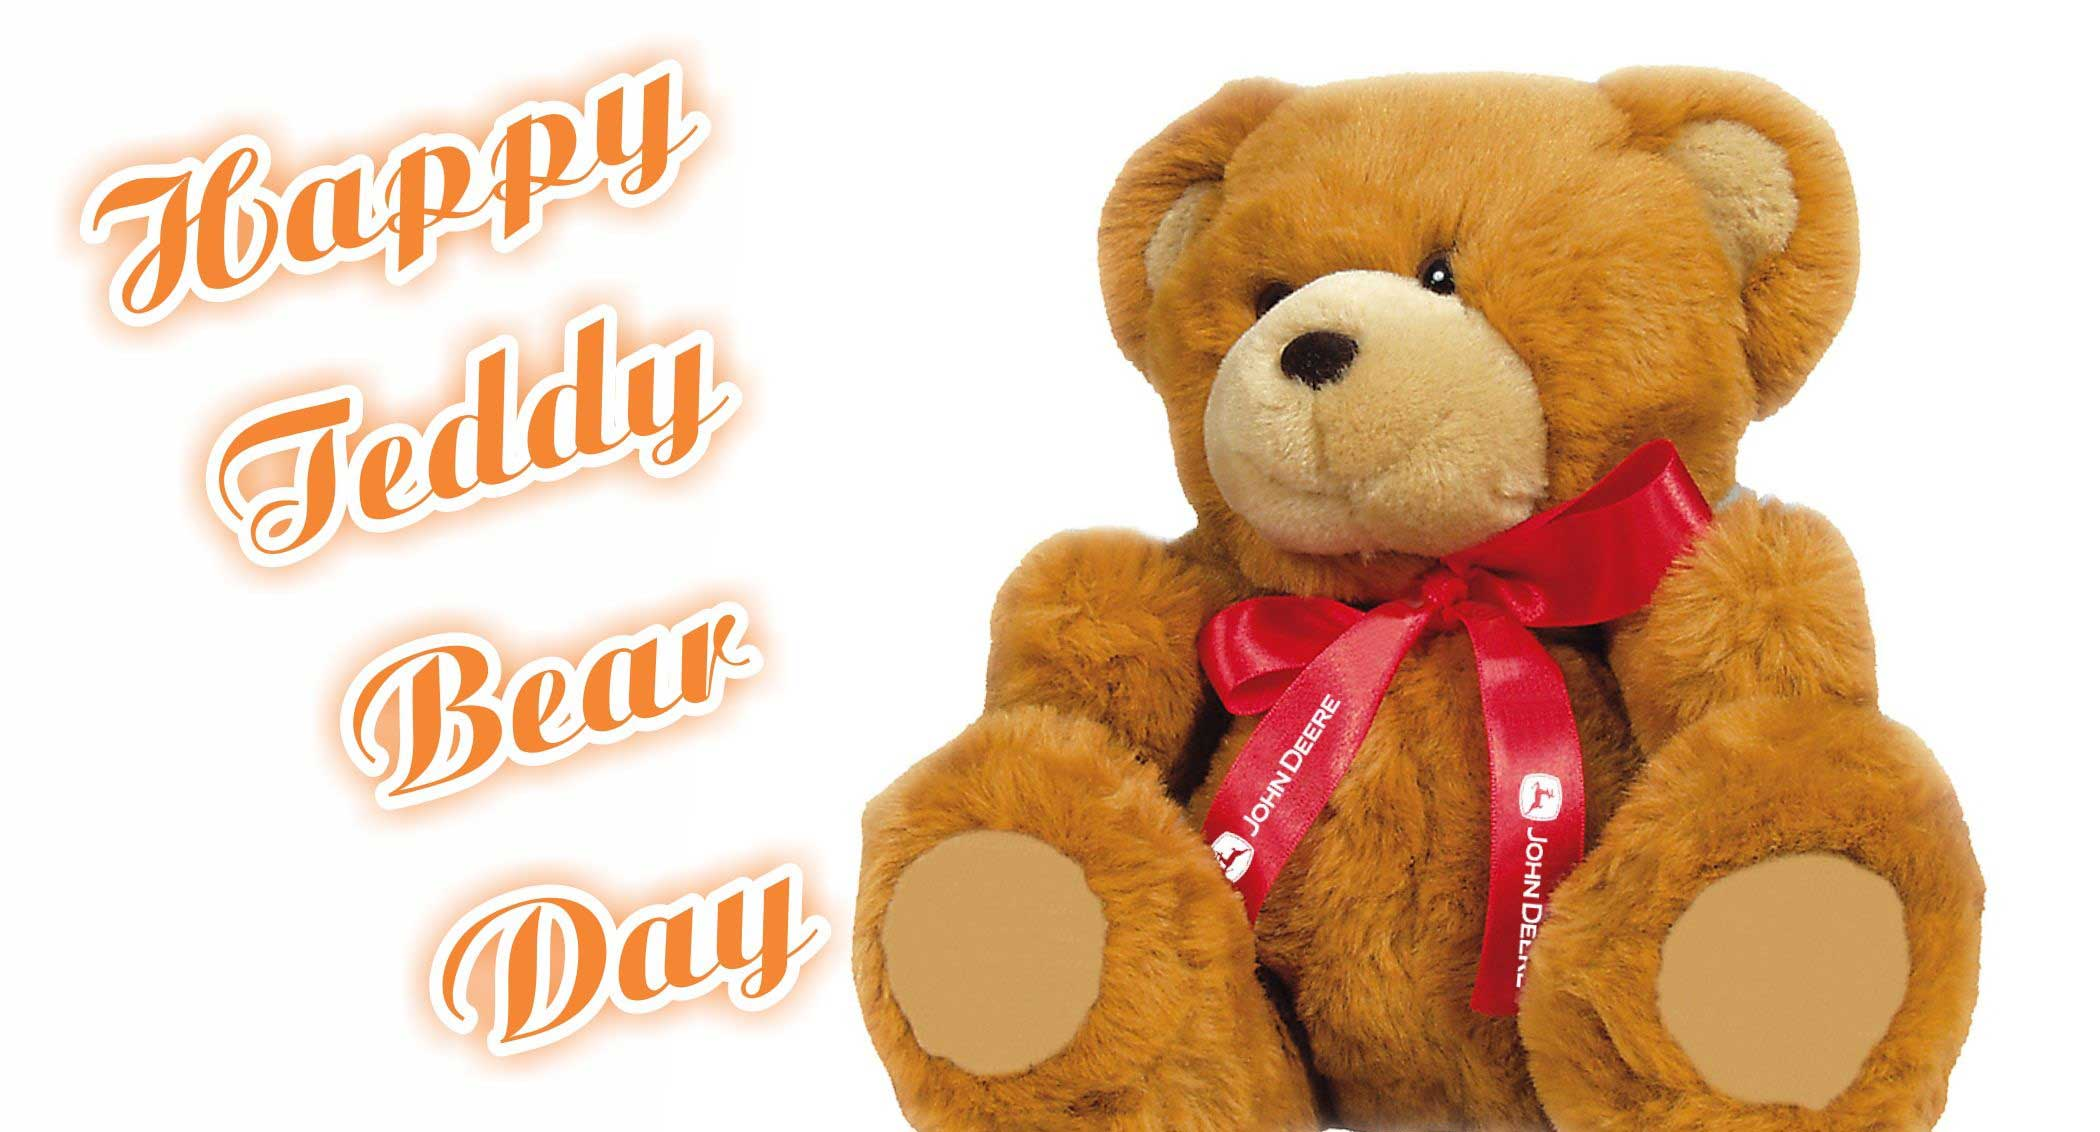 Teddy Bear Day 2018 Quotes Sayings And Images Freshmorningquotes